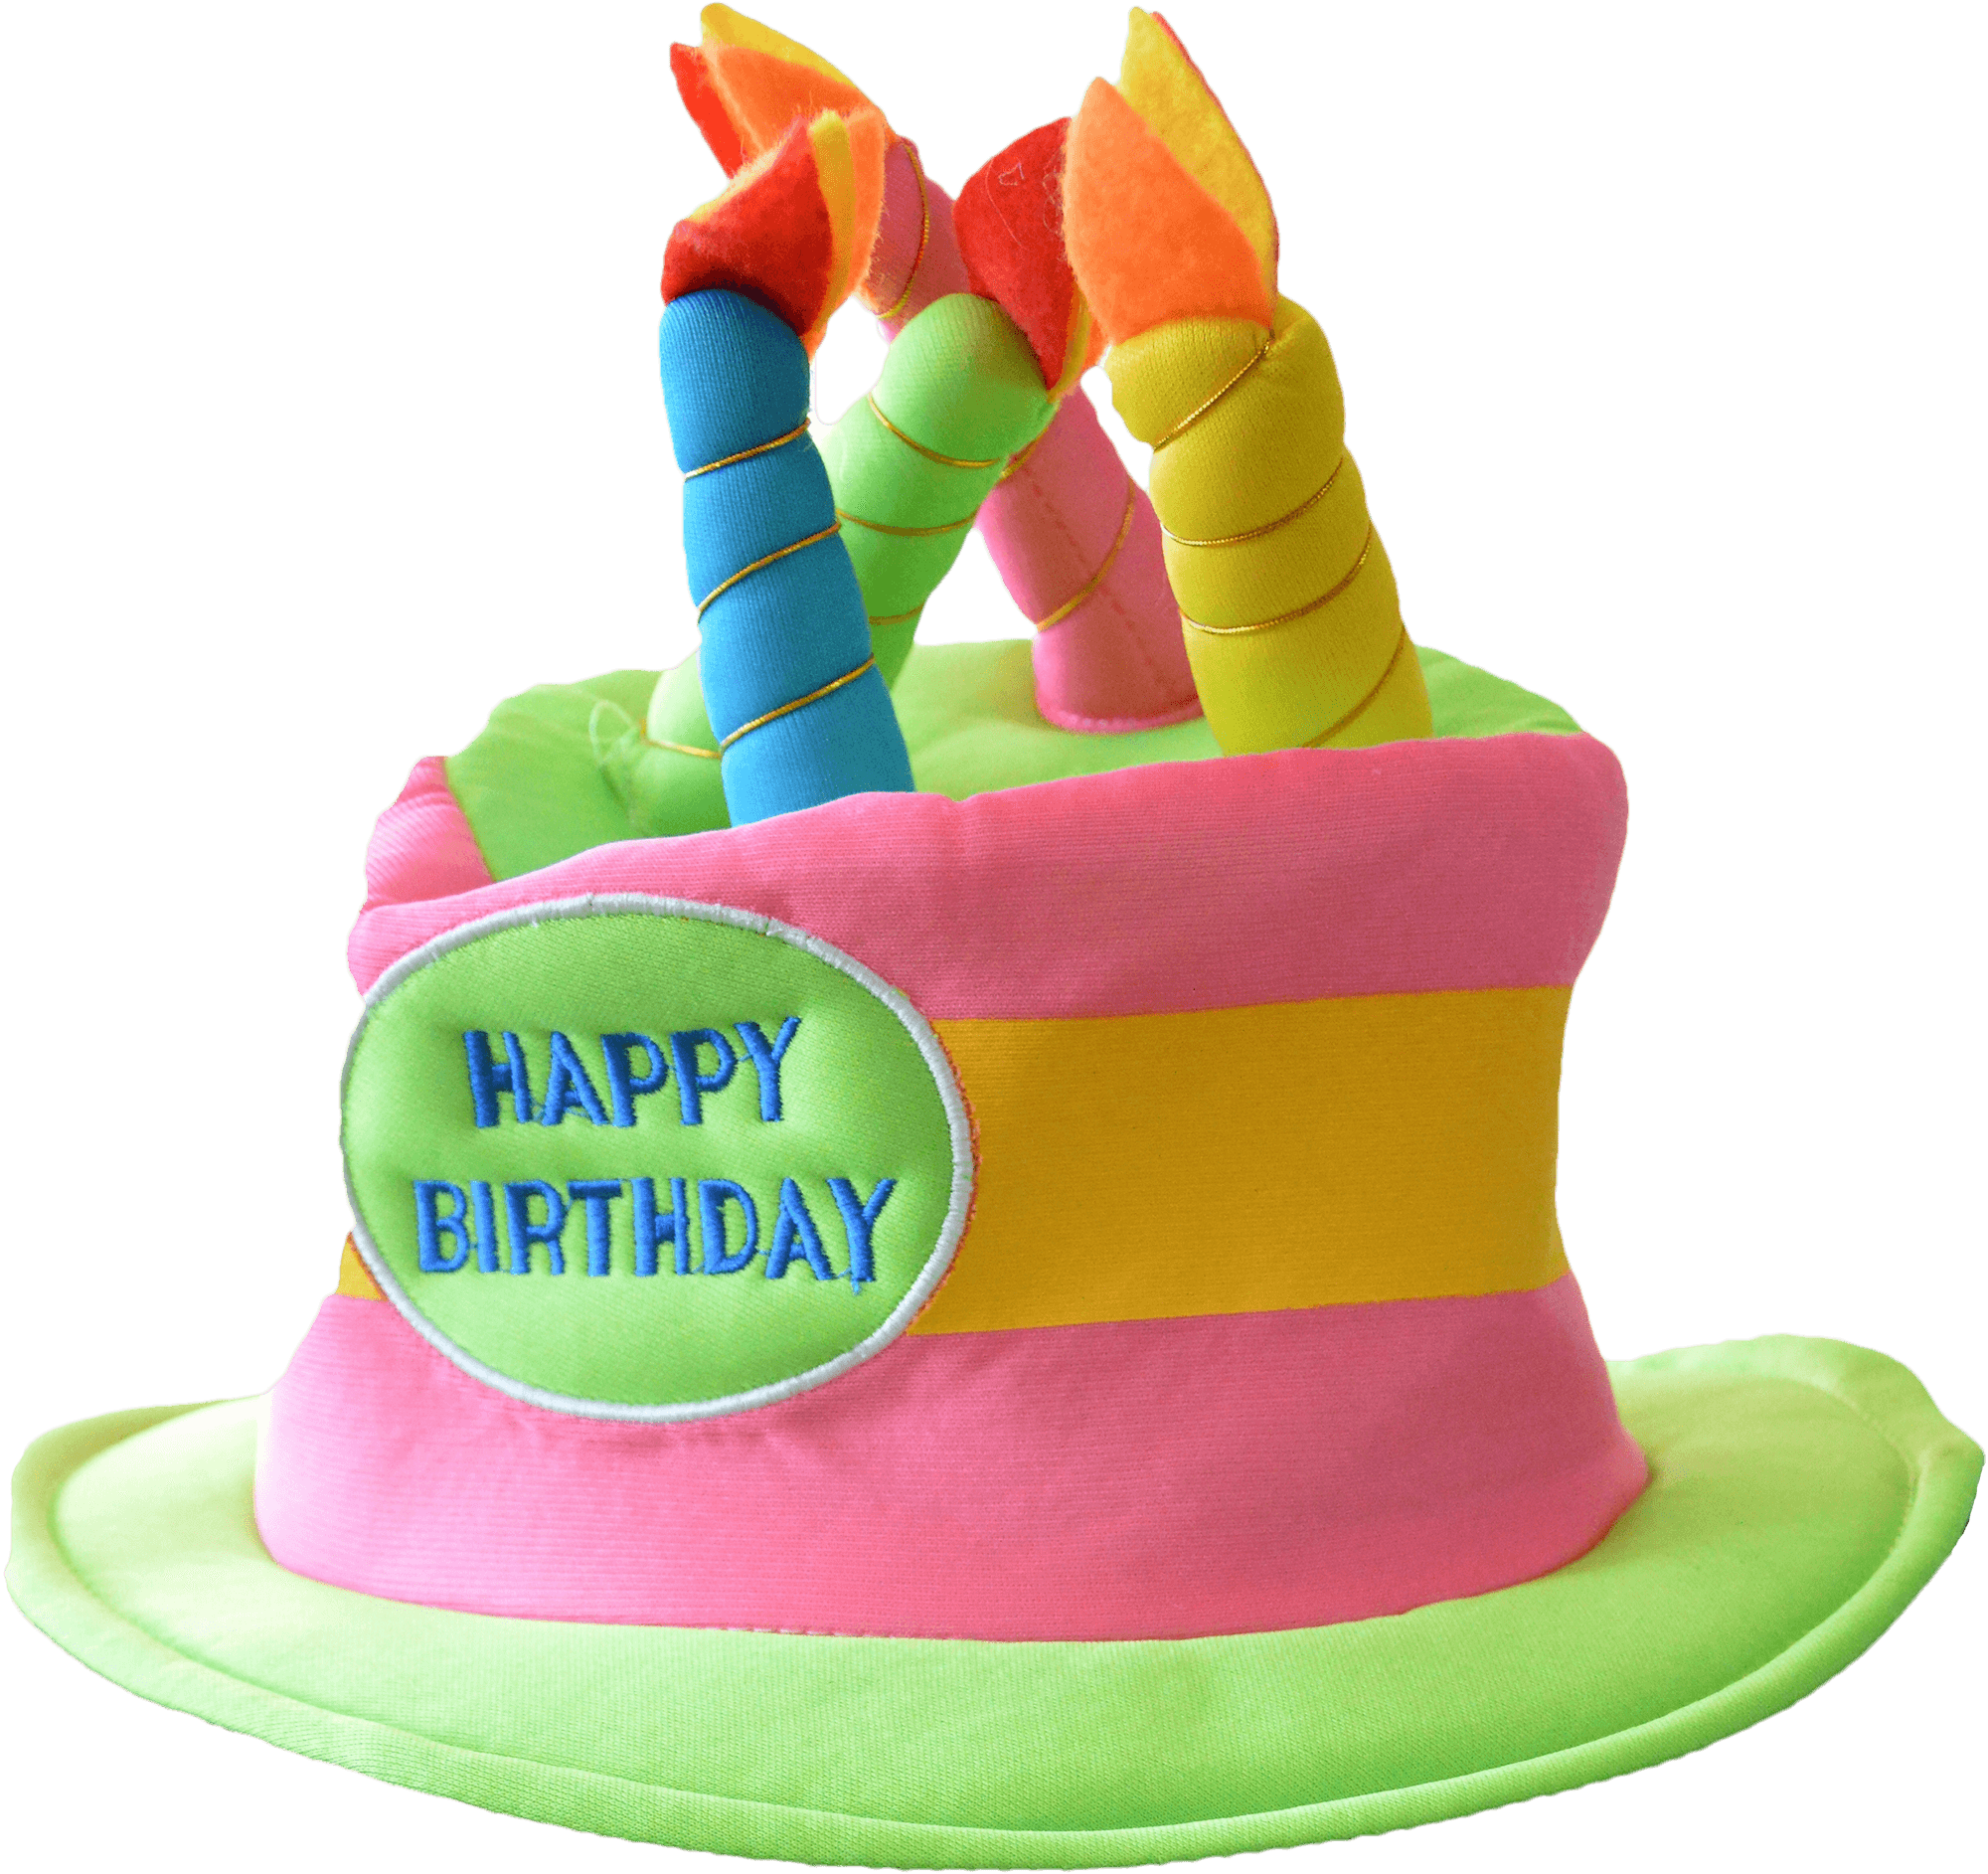 Clipart birthday caps. Hat transparent png stickpng